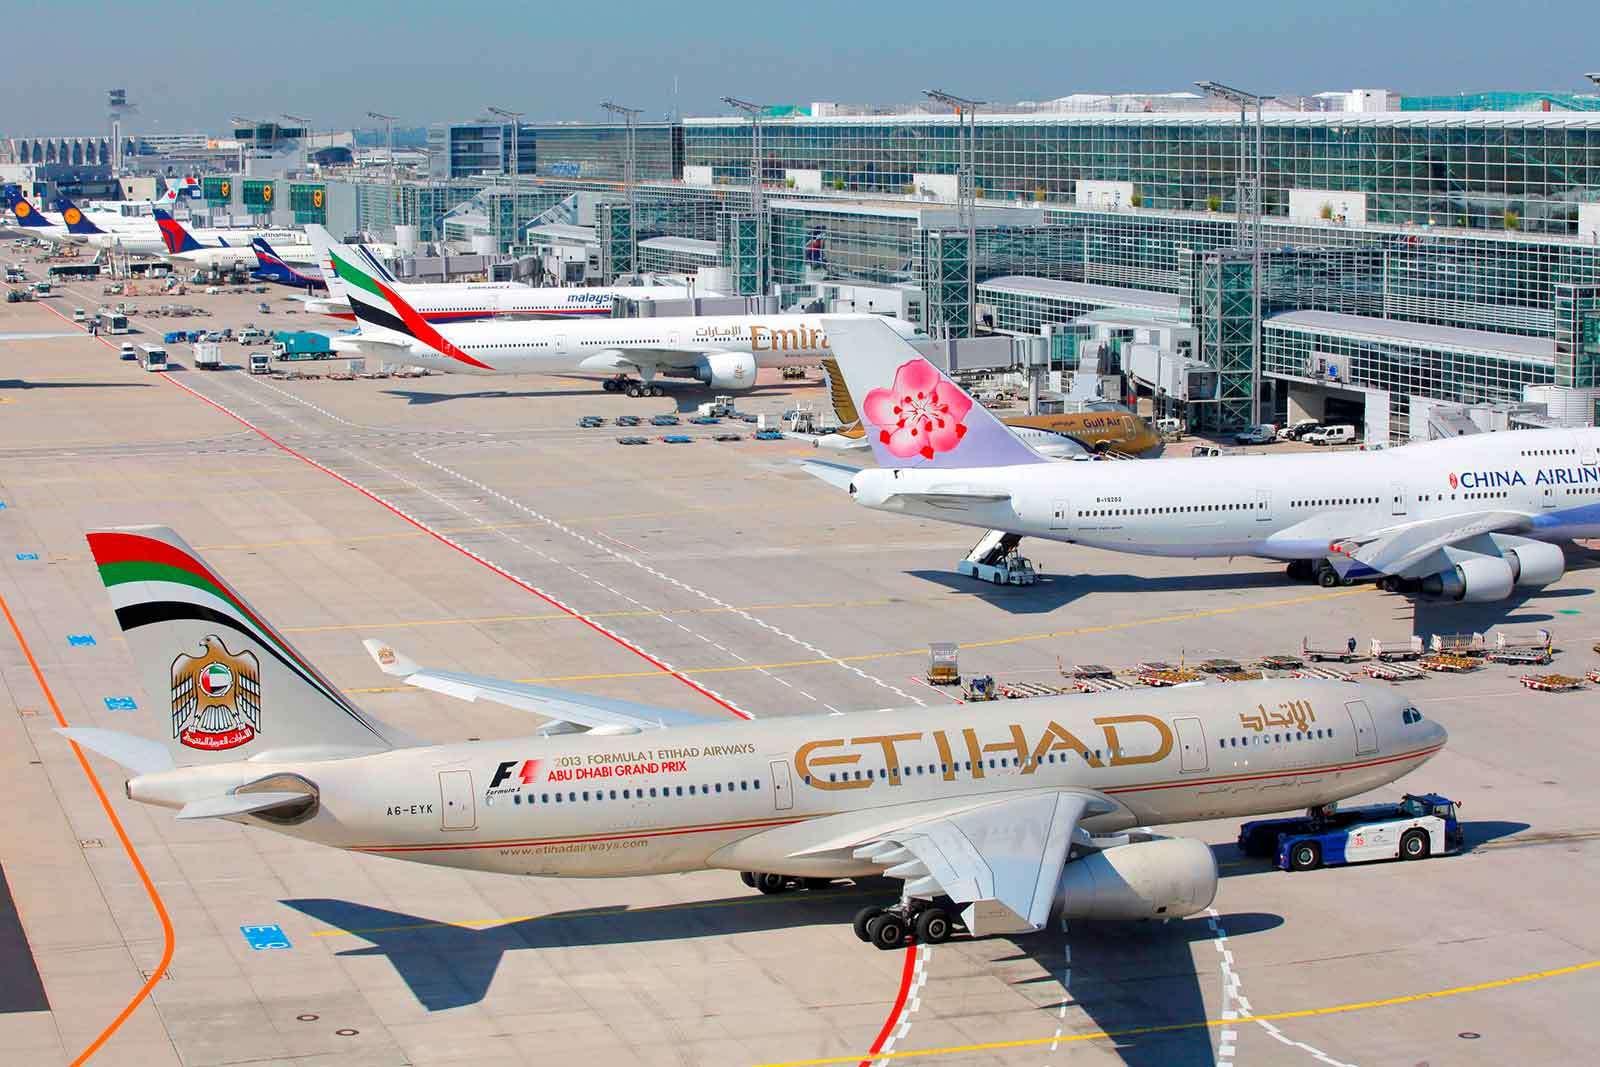 Etihad pushback at Fraport Gtoup Frankfurt Airport